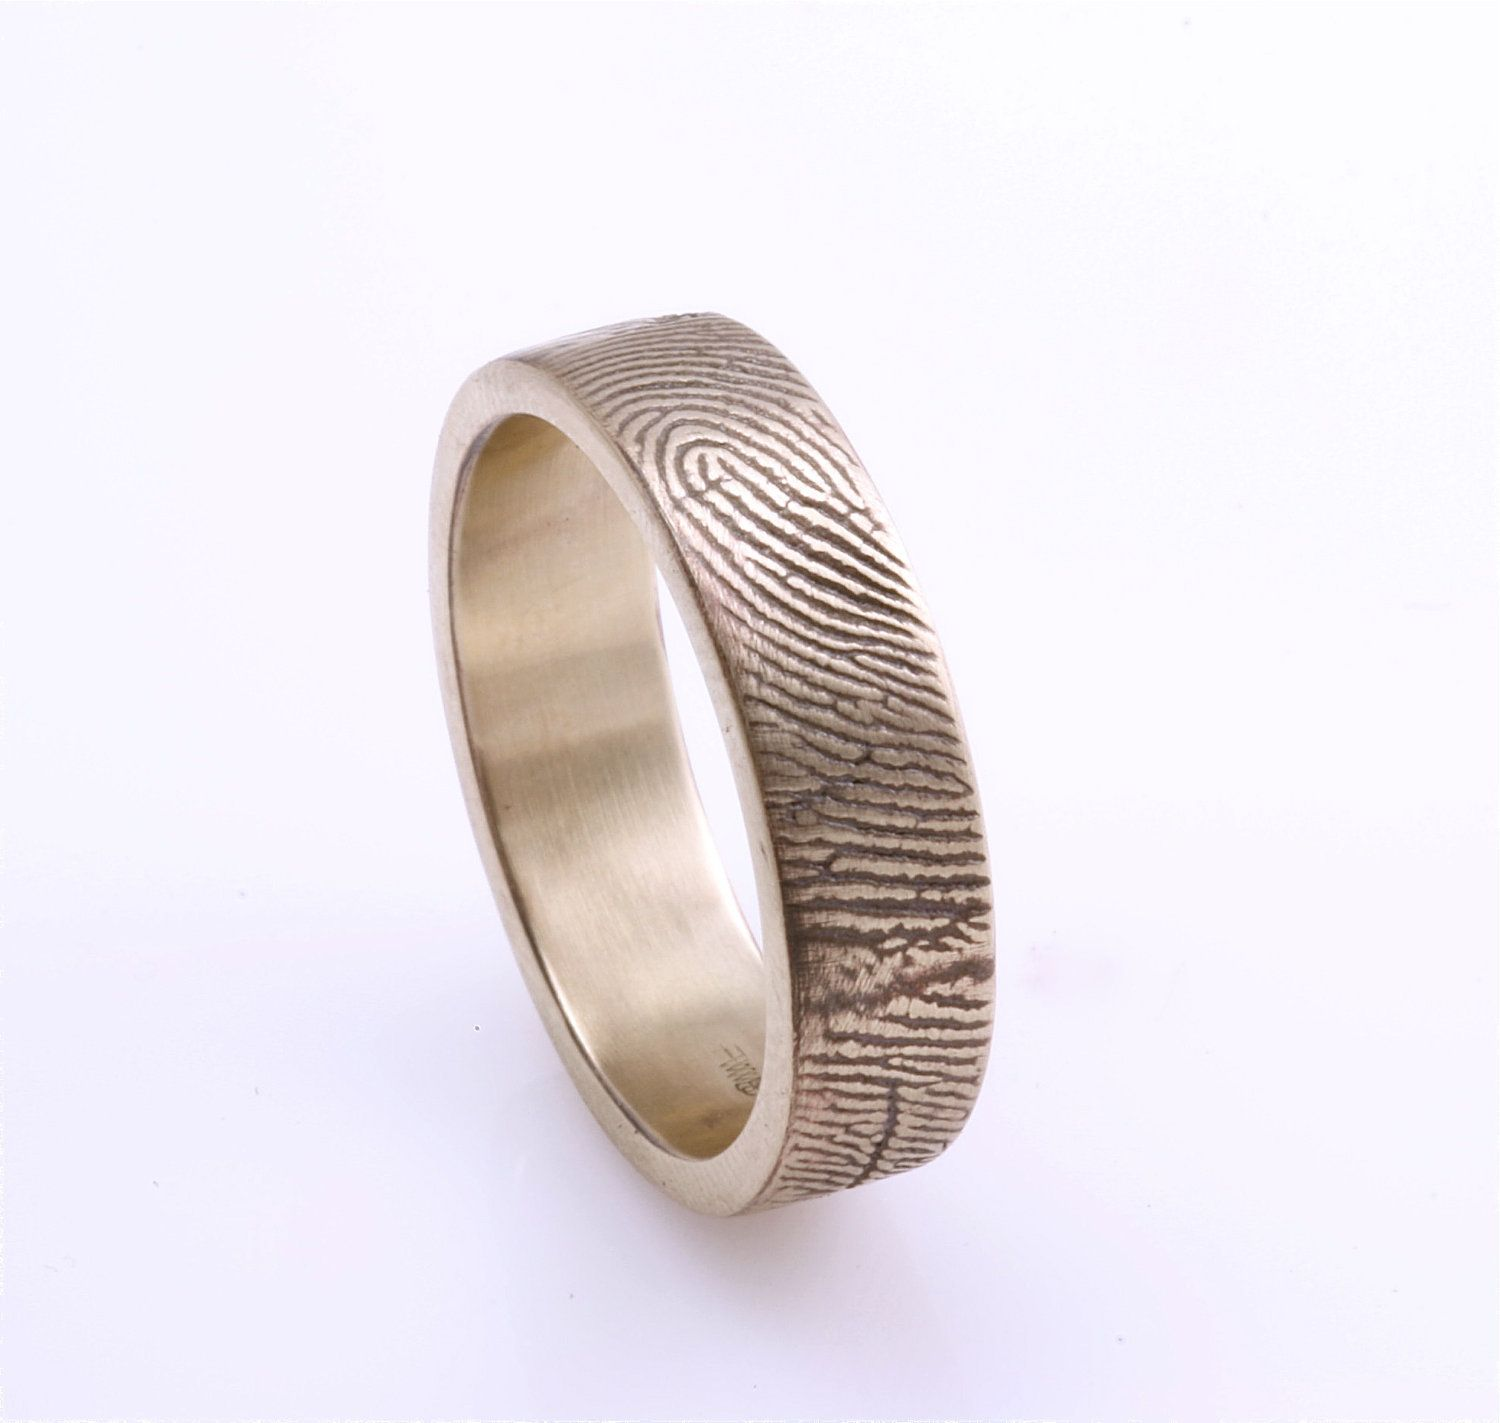 fingerprintwedding wedding with ring rings bands jewelryrider shop fingerprint designs love